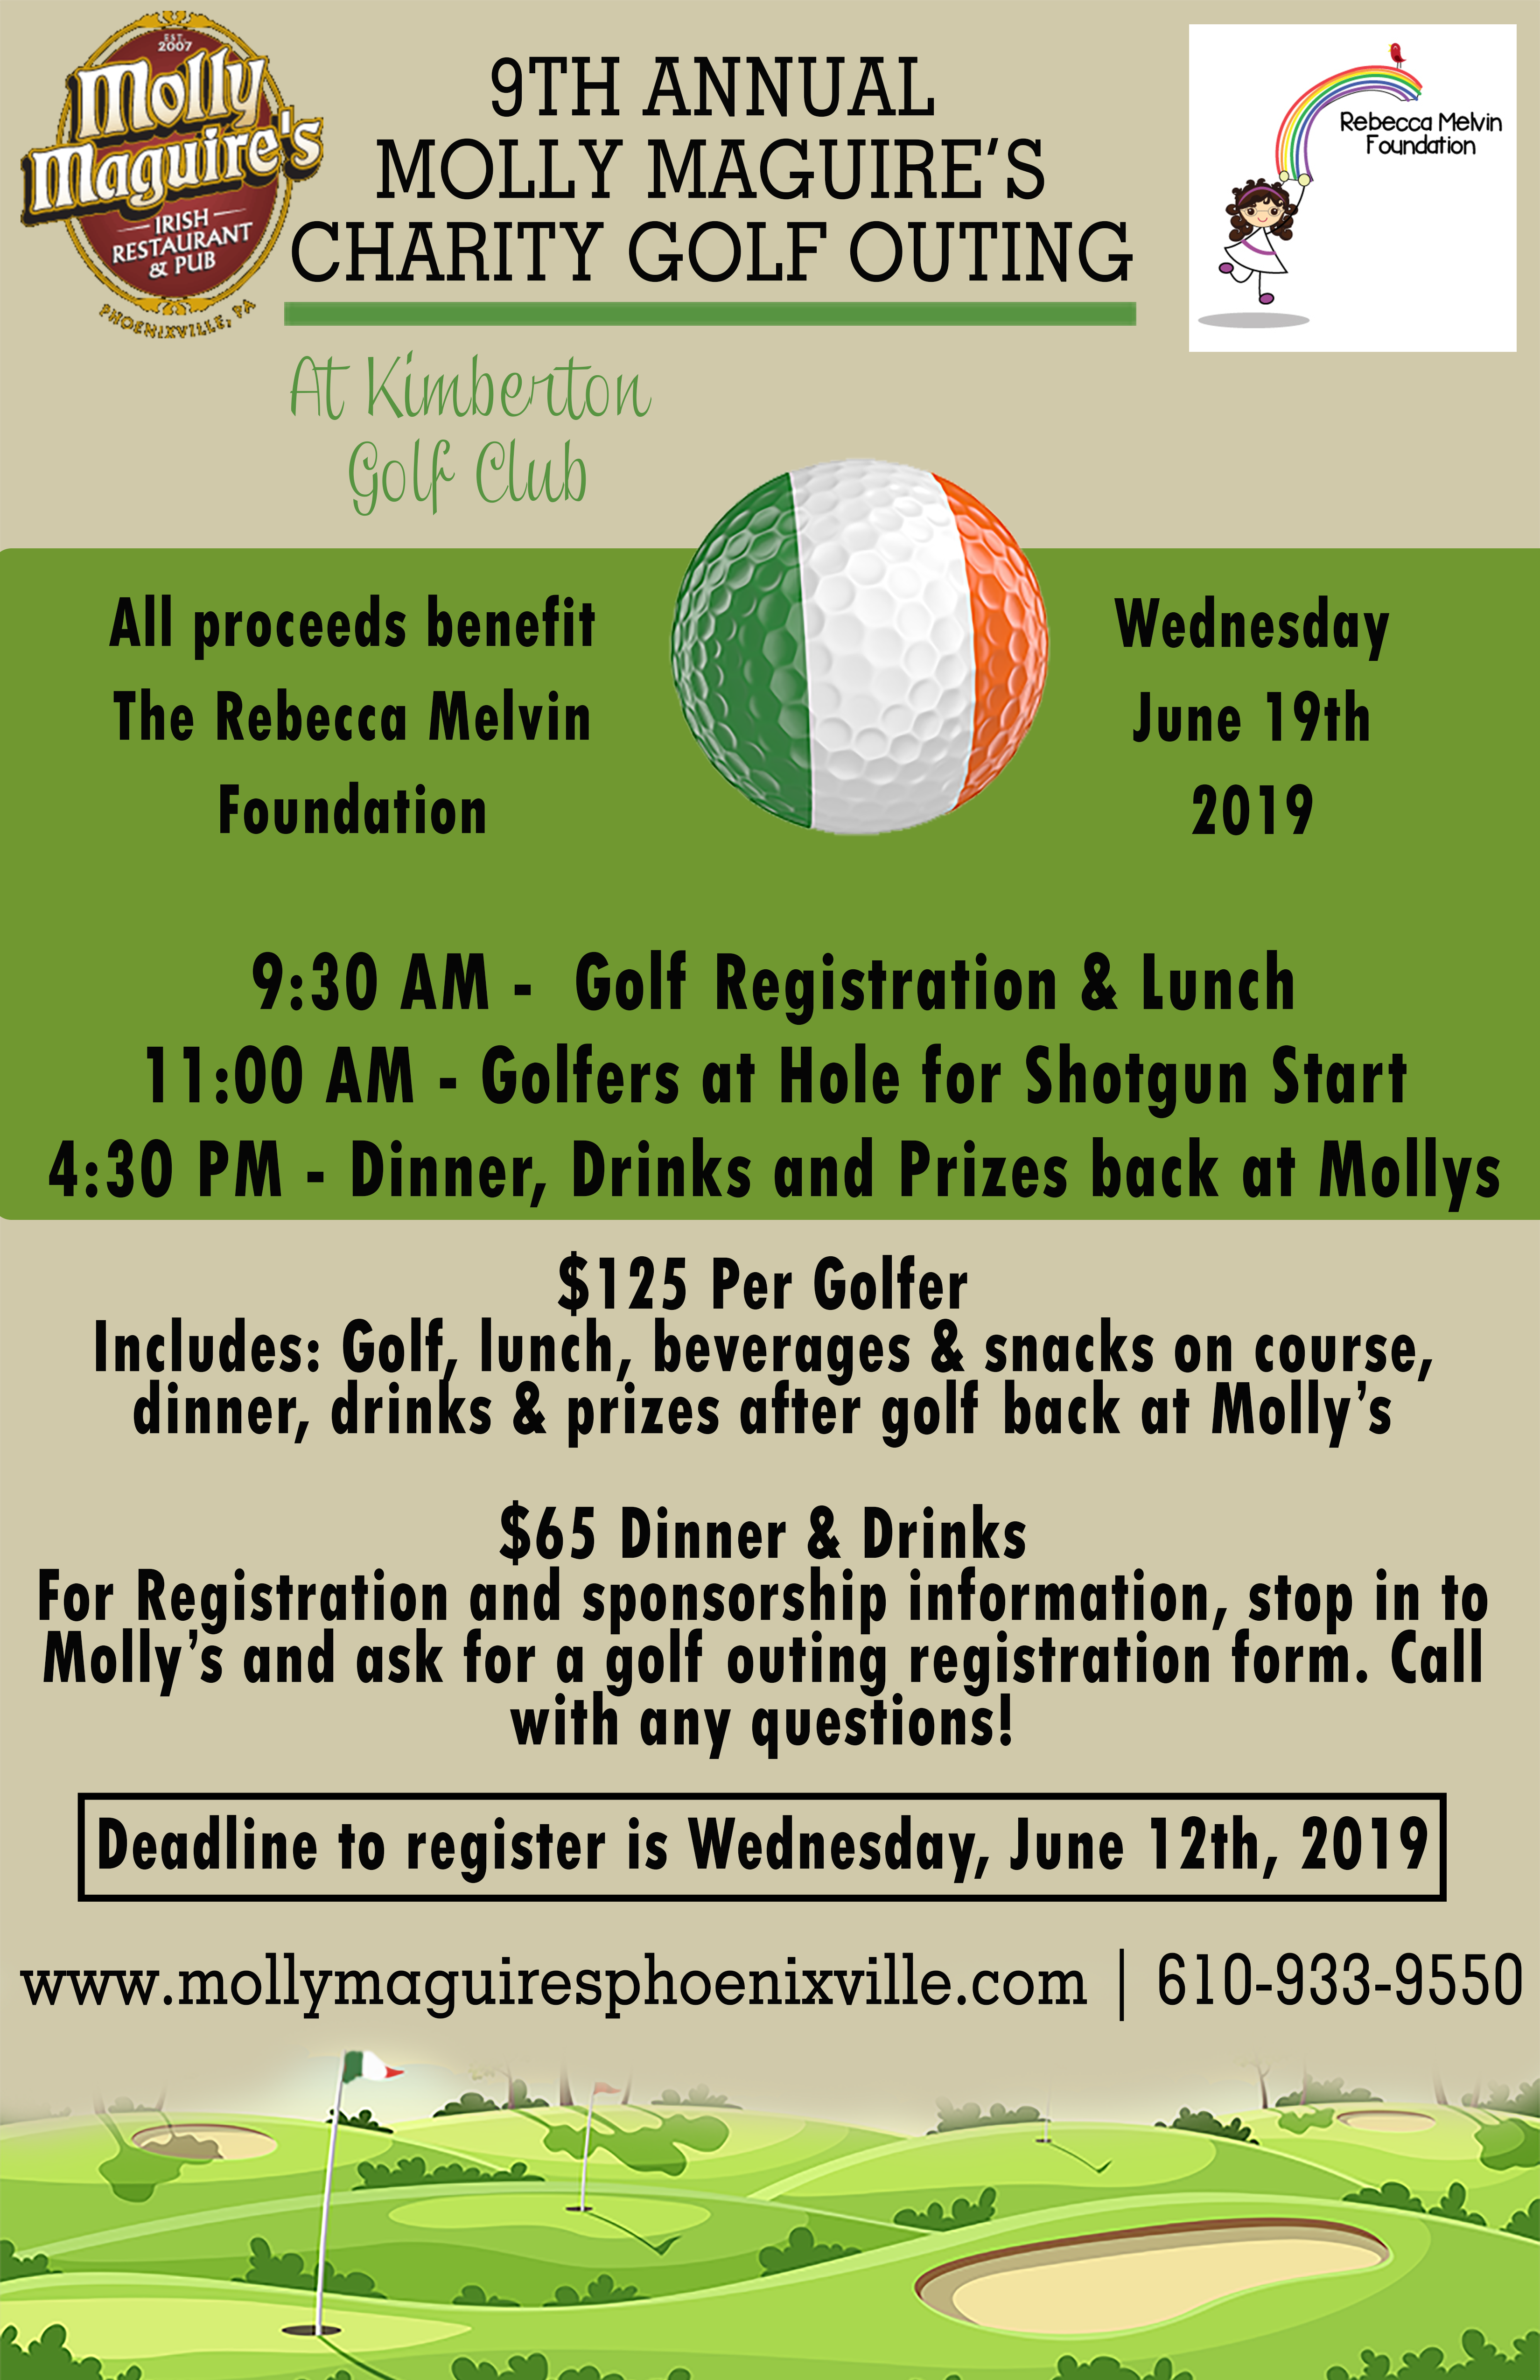 charity golf outing - june 19th 2019